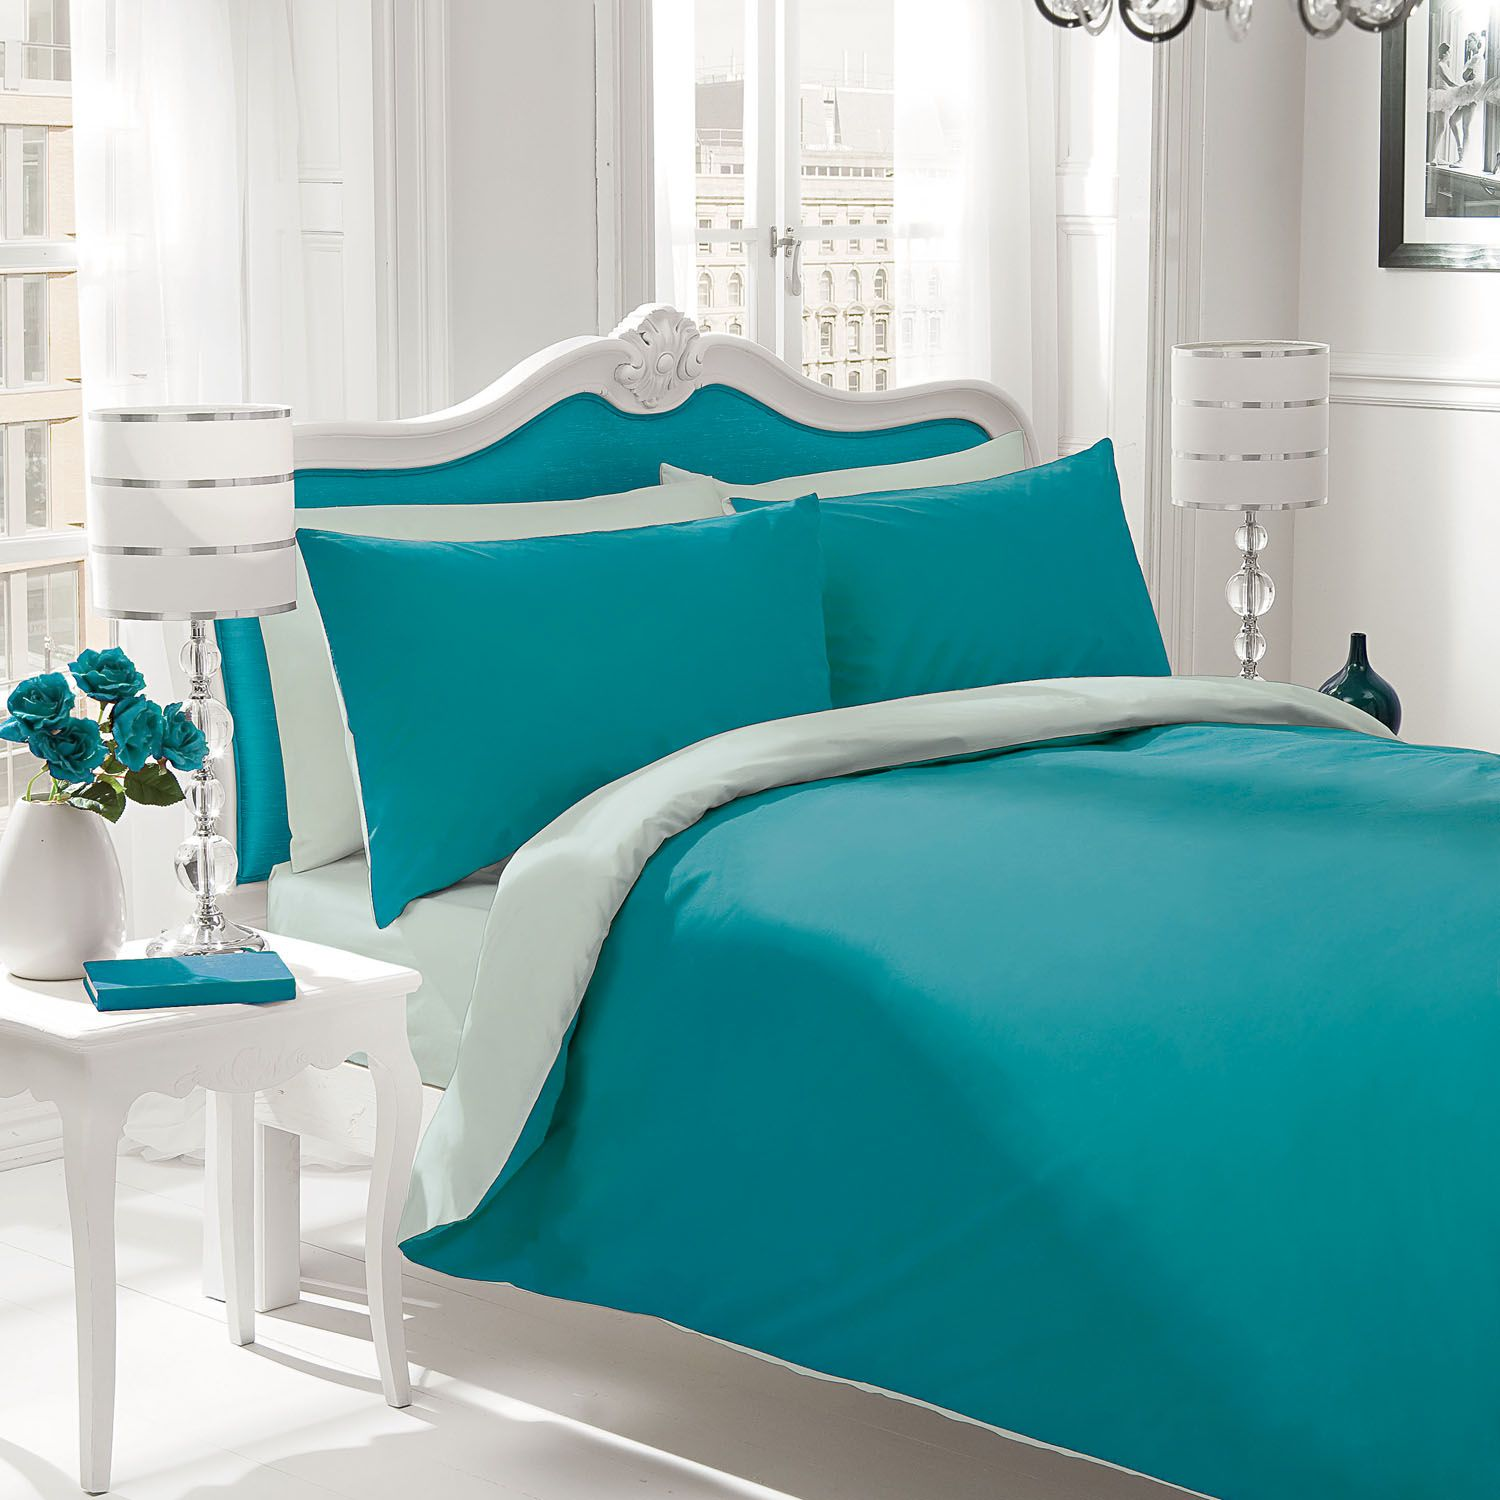 co gray hizli set rapidlaunch black comforter grey uk sheets and teal white bedding stupendous bed sets